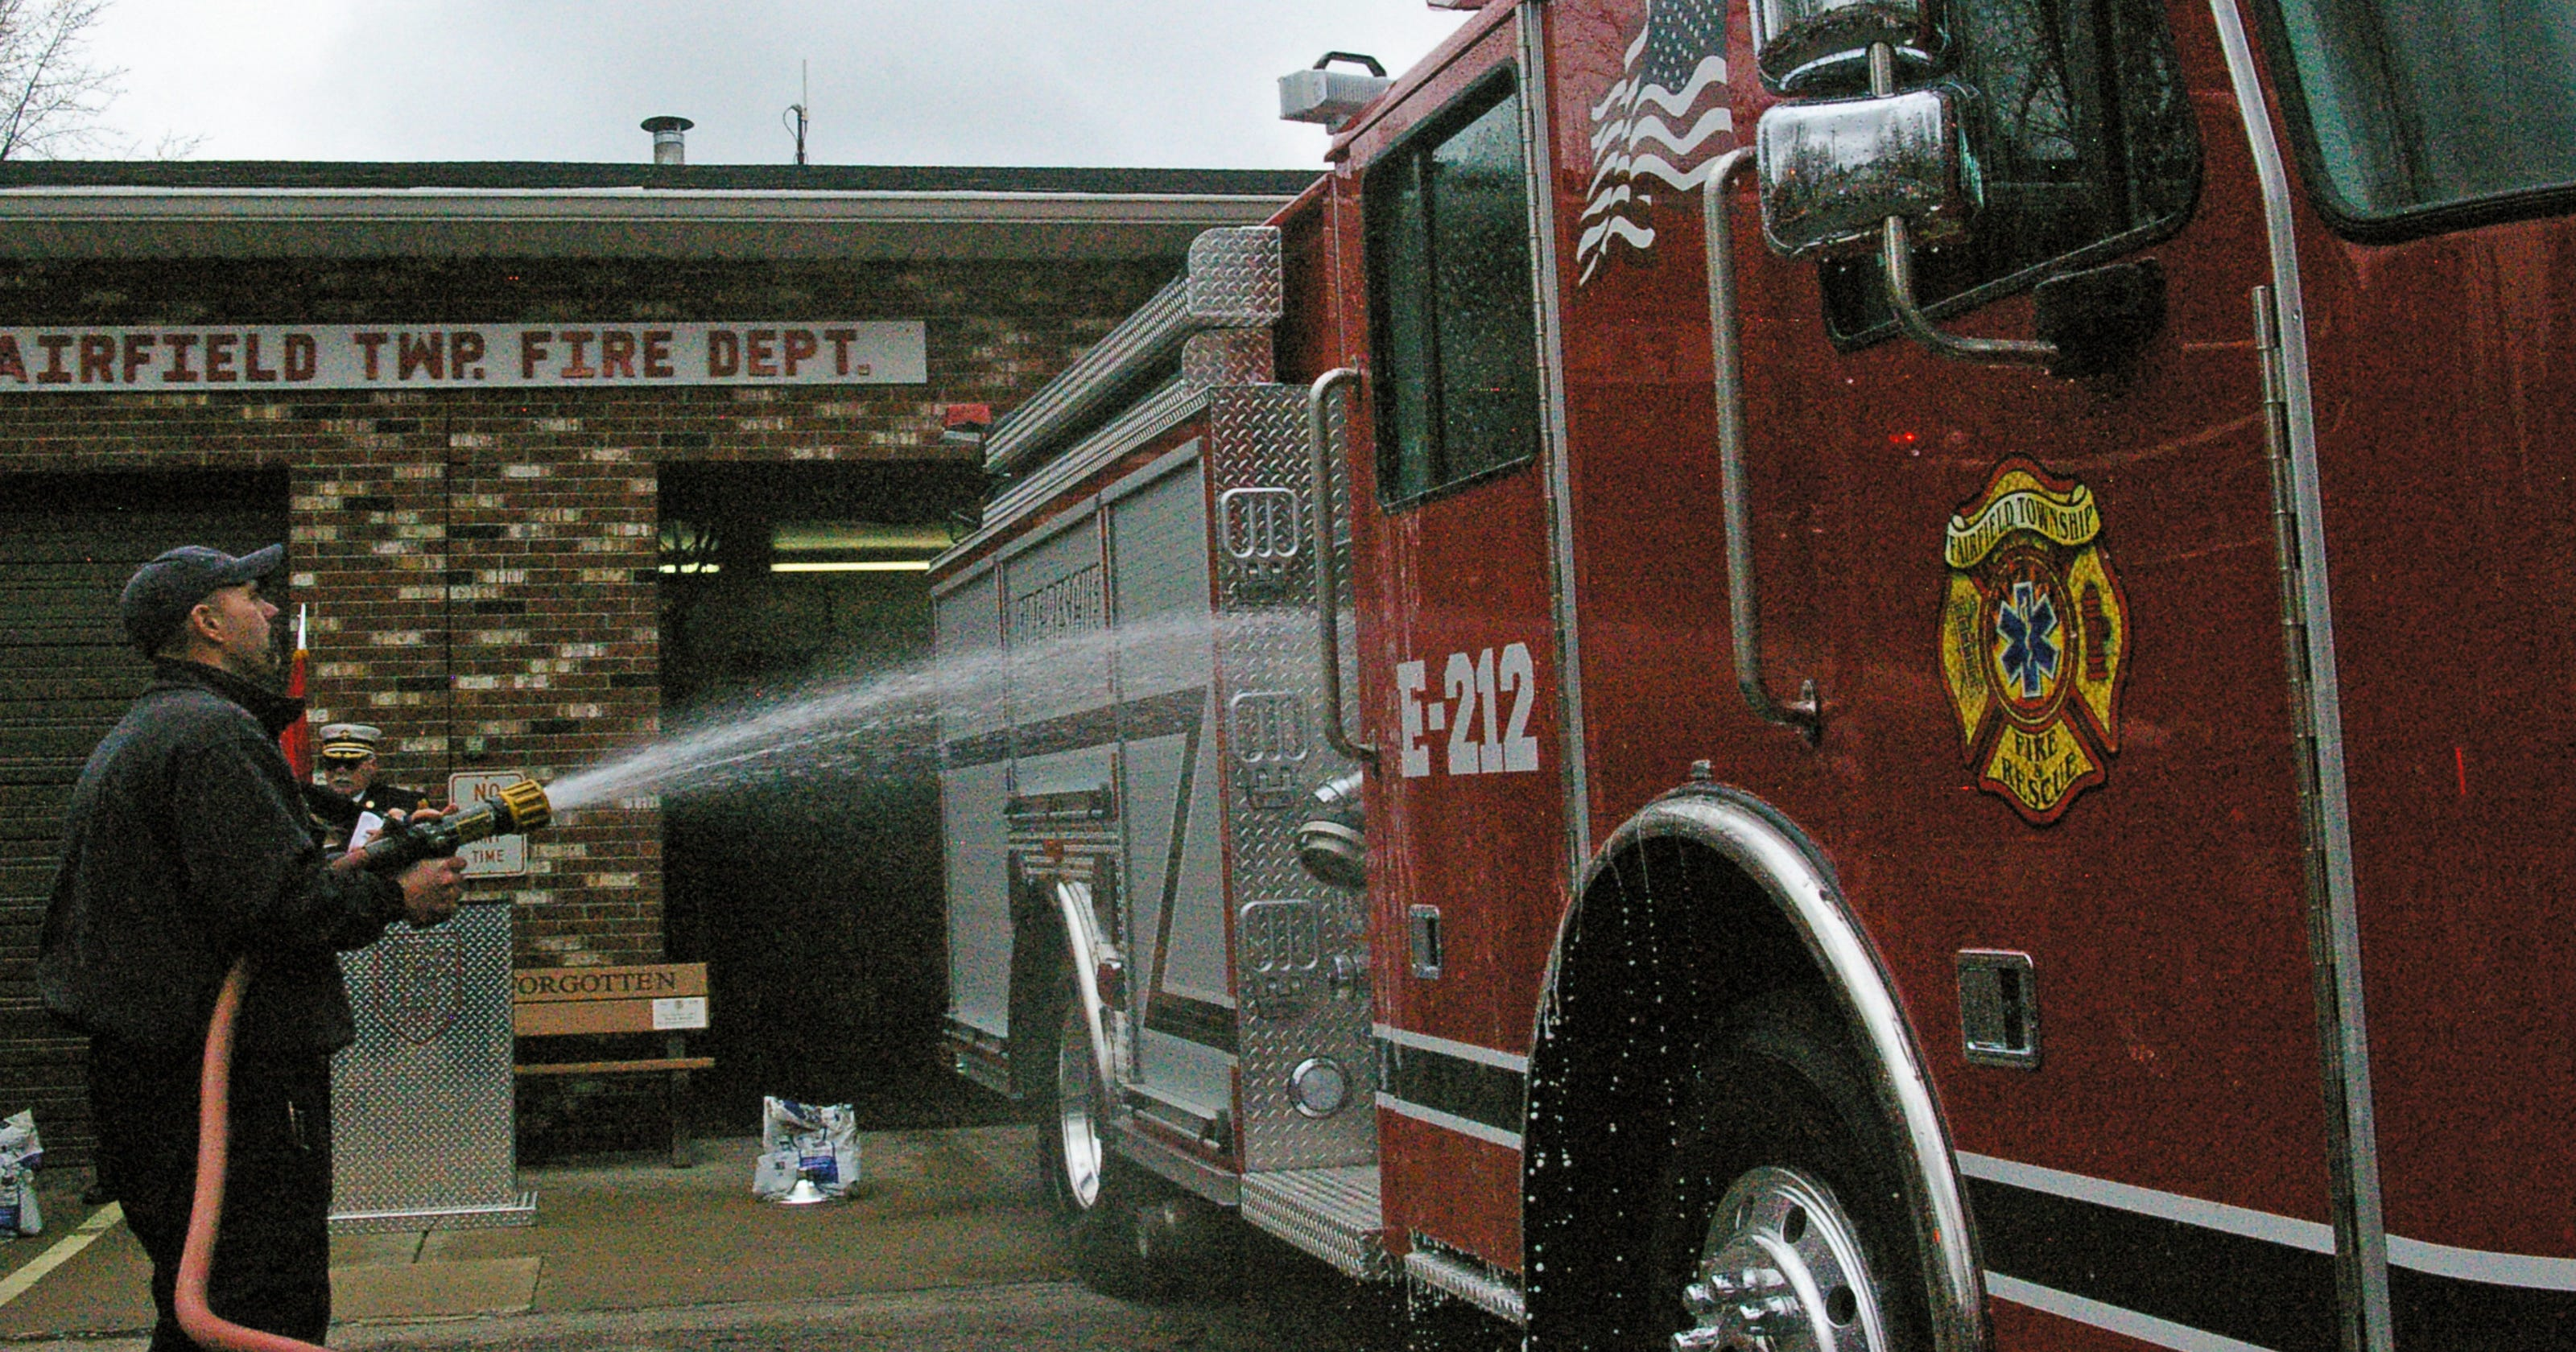 Fairfield Twp  losing money on police, fire departments